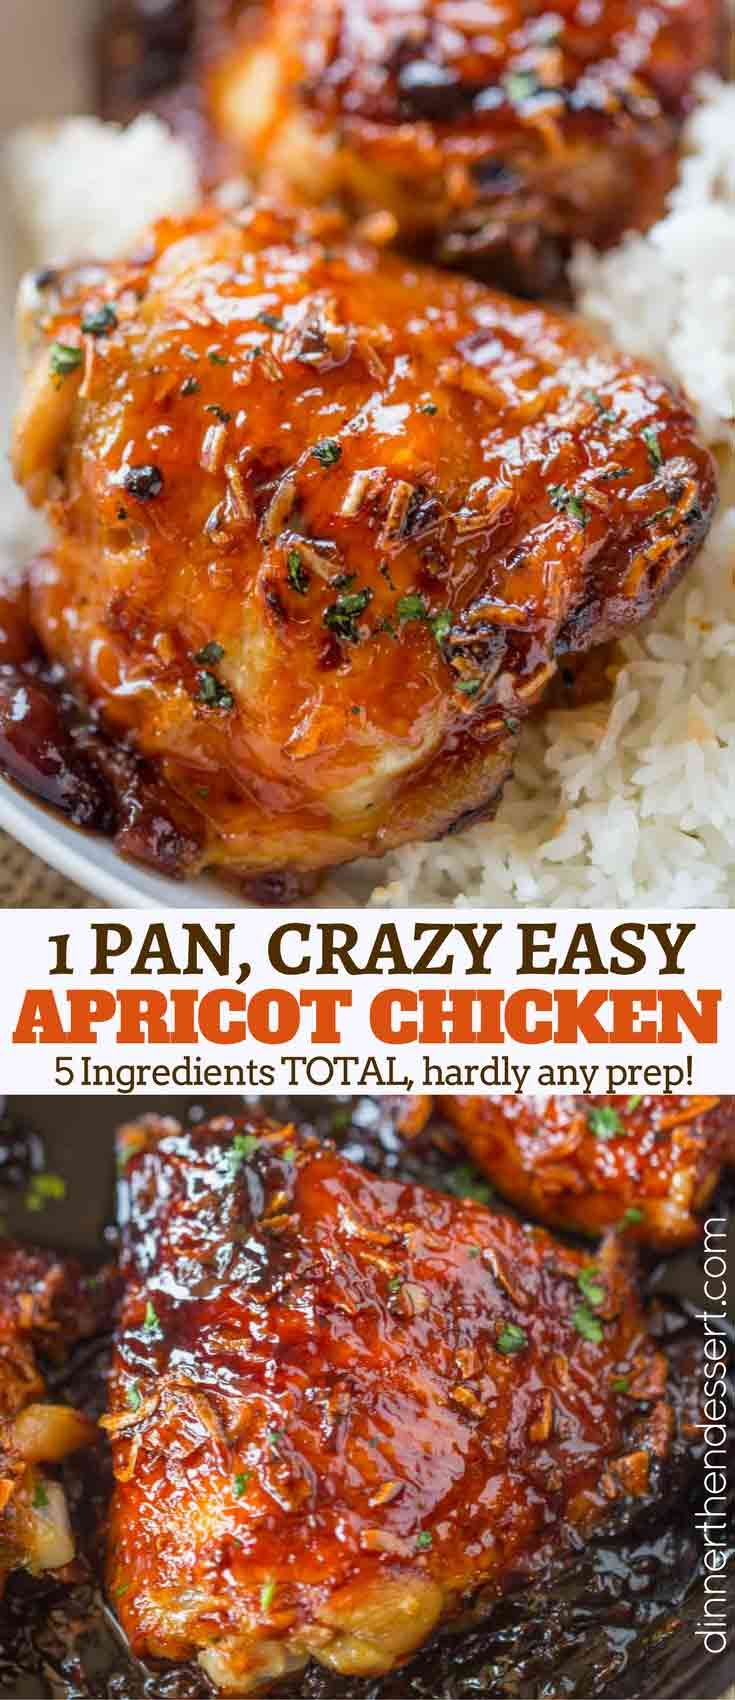 One Pan Apricot Chicken Like Your Mom Used To Make, With Just Five Ingredient And One Pan, This Dish Is All About Flavor With Almost No Effort! Includes Recipes For Homemade Onion Soup Mix And French Dressing!